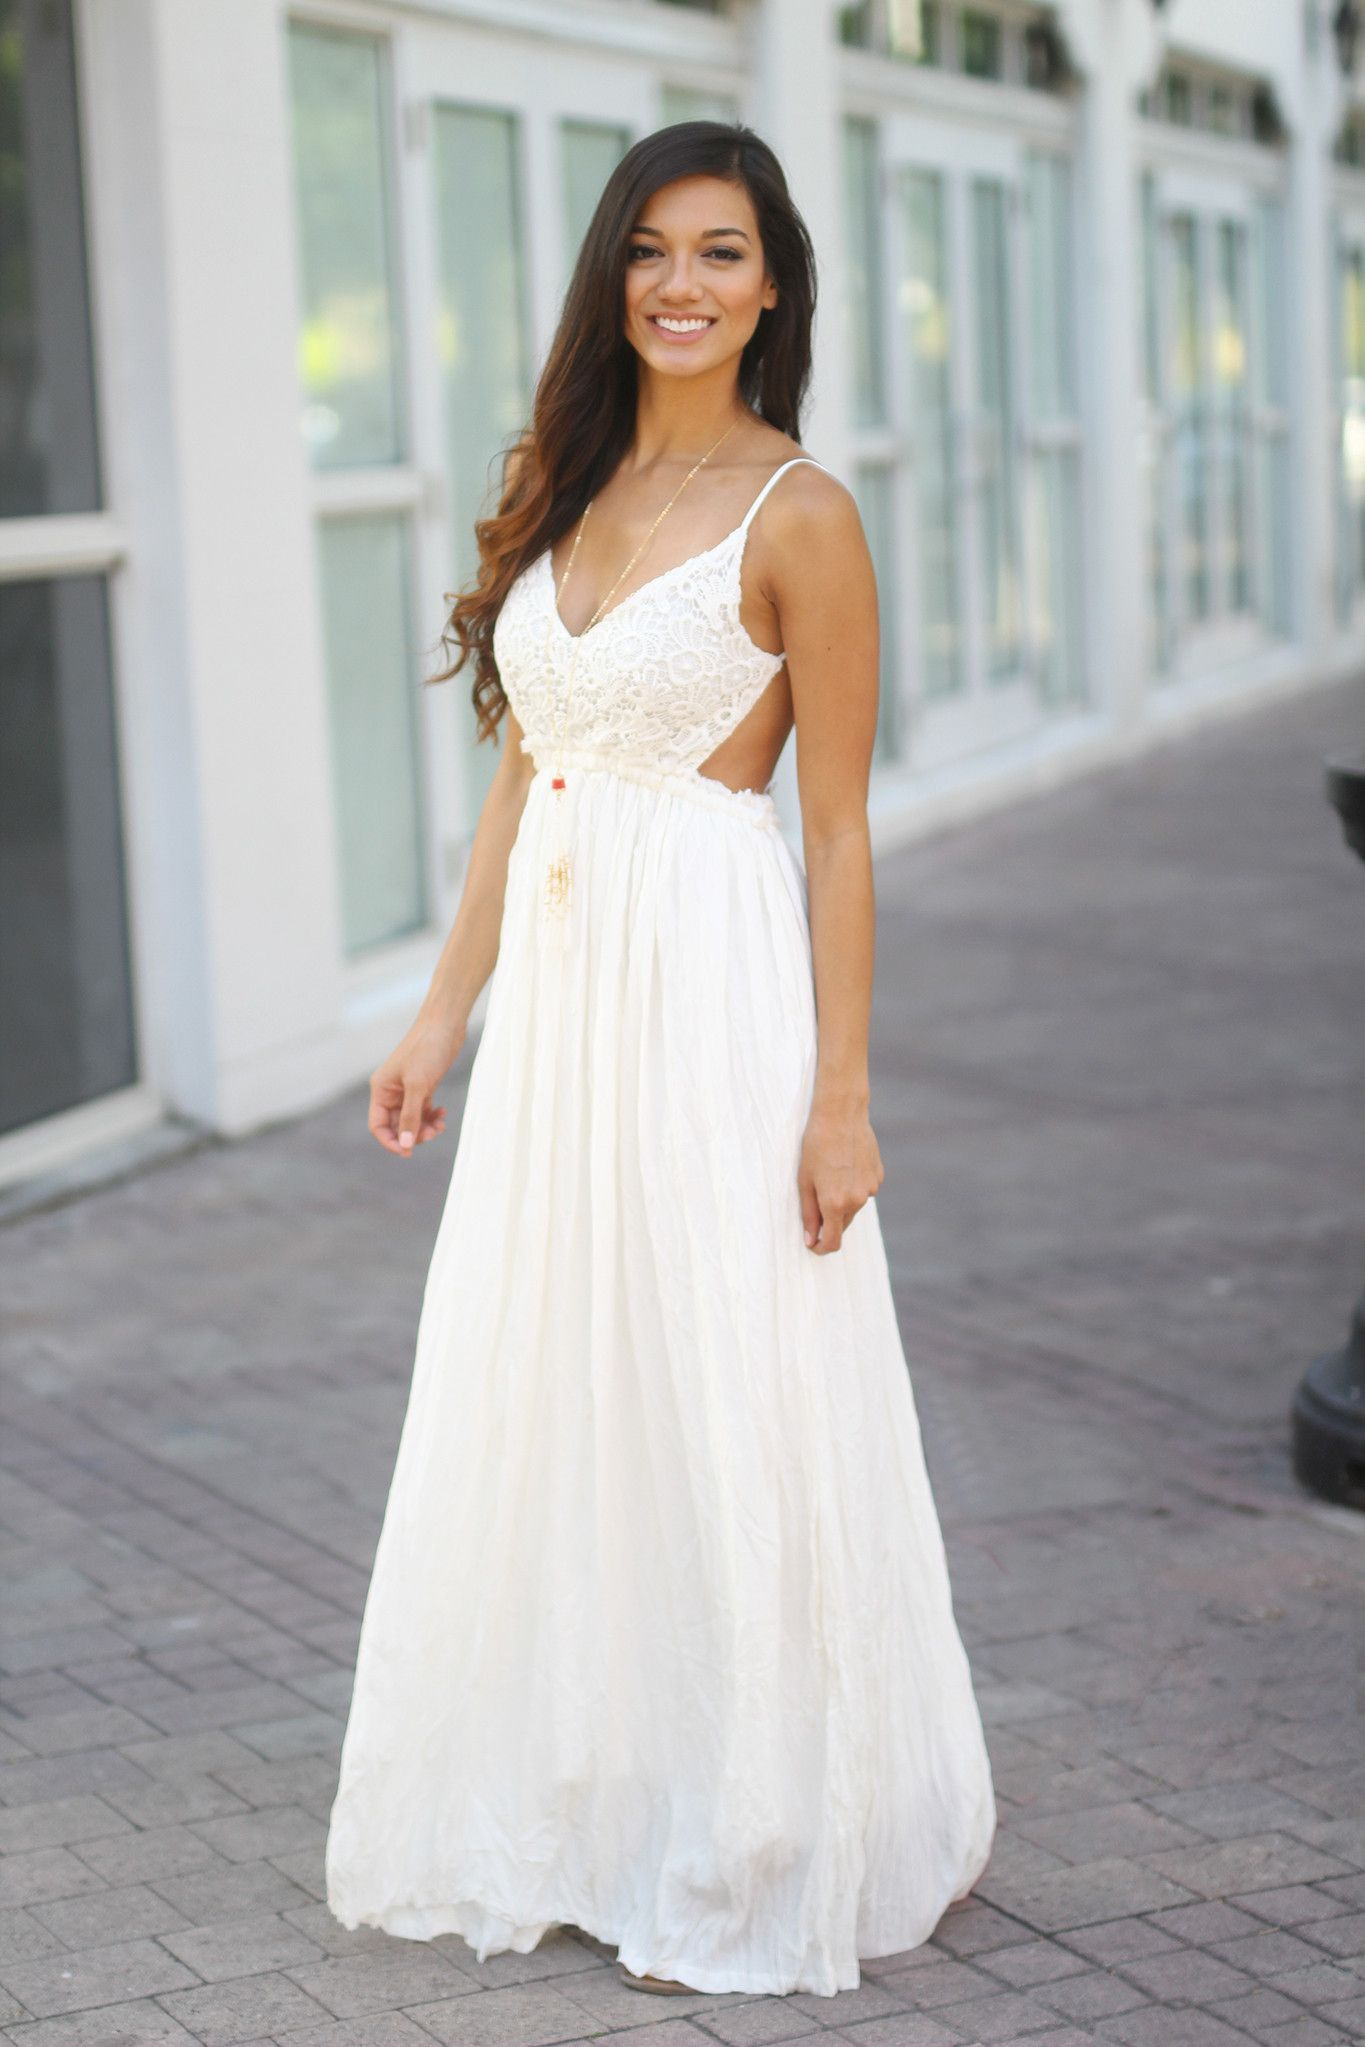 7d0fe6a09ce7 Our best seller maxi dress is back! This super elegant and amazing White  Lace Maxi Dress with Open Back is perfect for any special occasion! We love  its ...